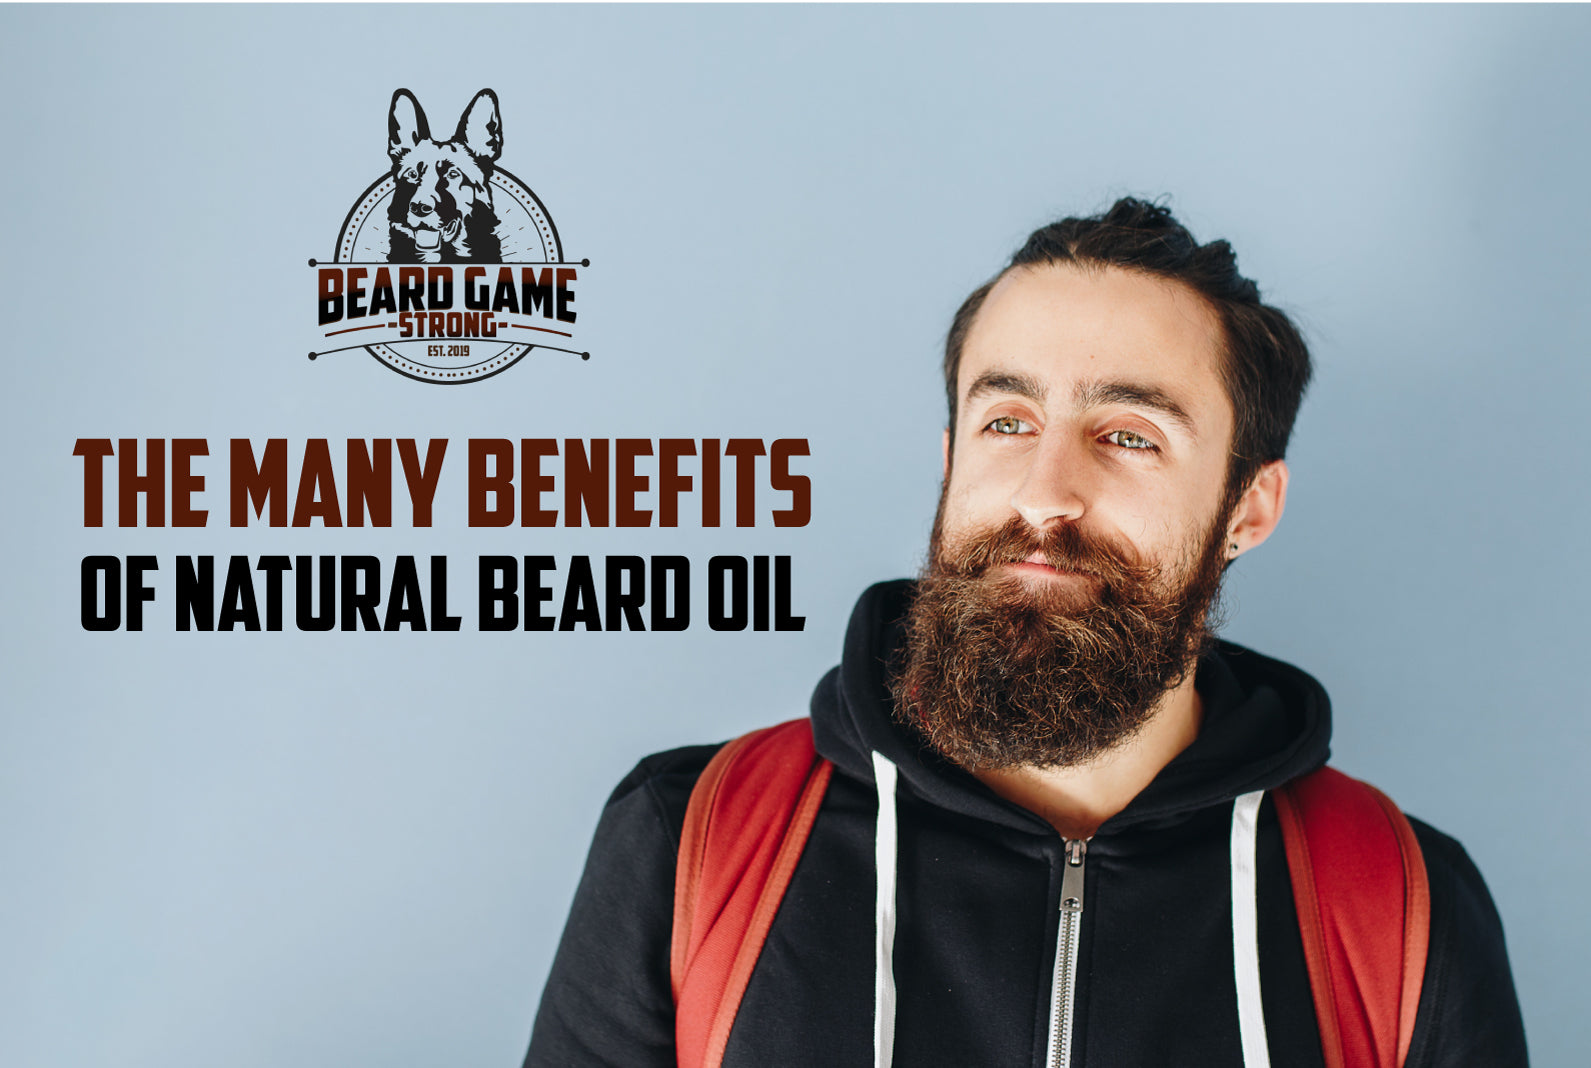 The Many Benefits of Natural Beard Oil